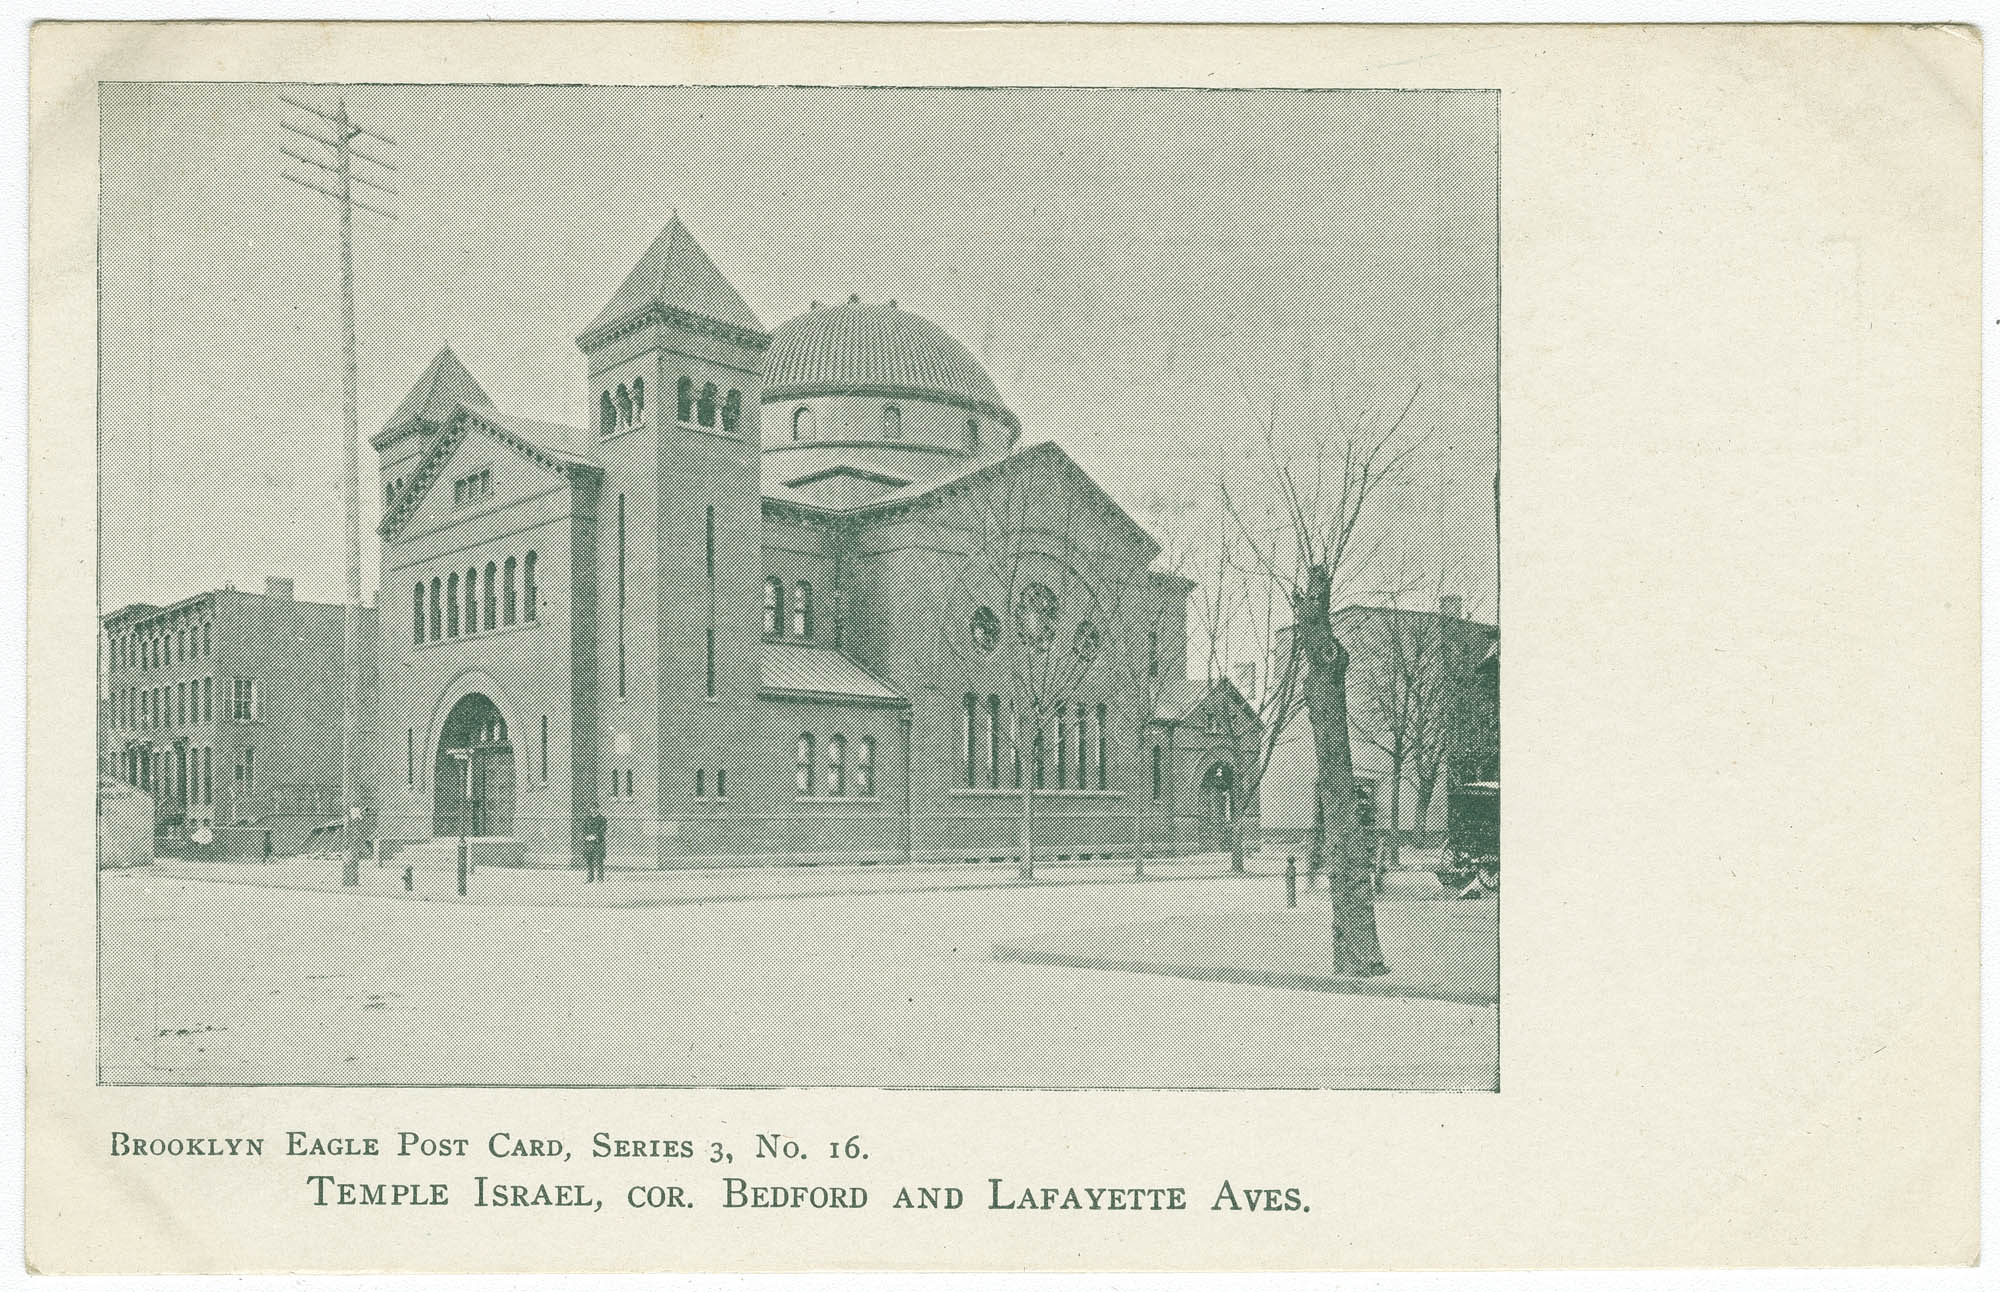 Temple Israel, cor. Bedford and Lafayette Aves.